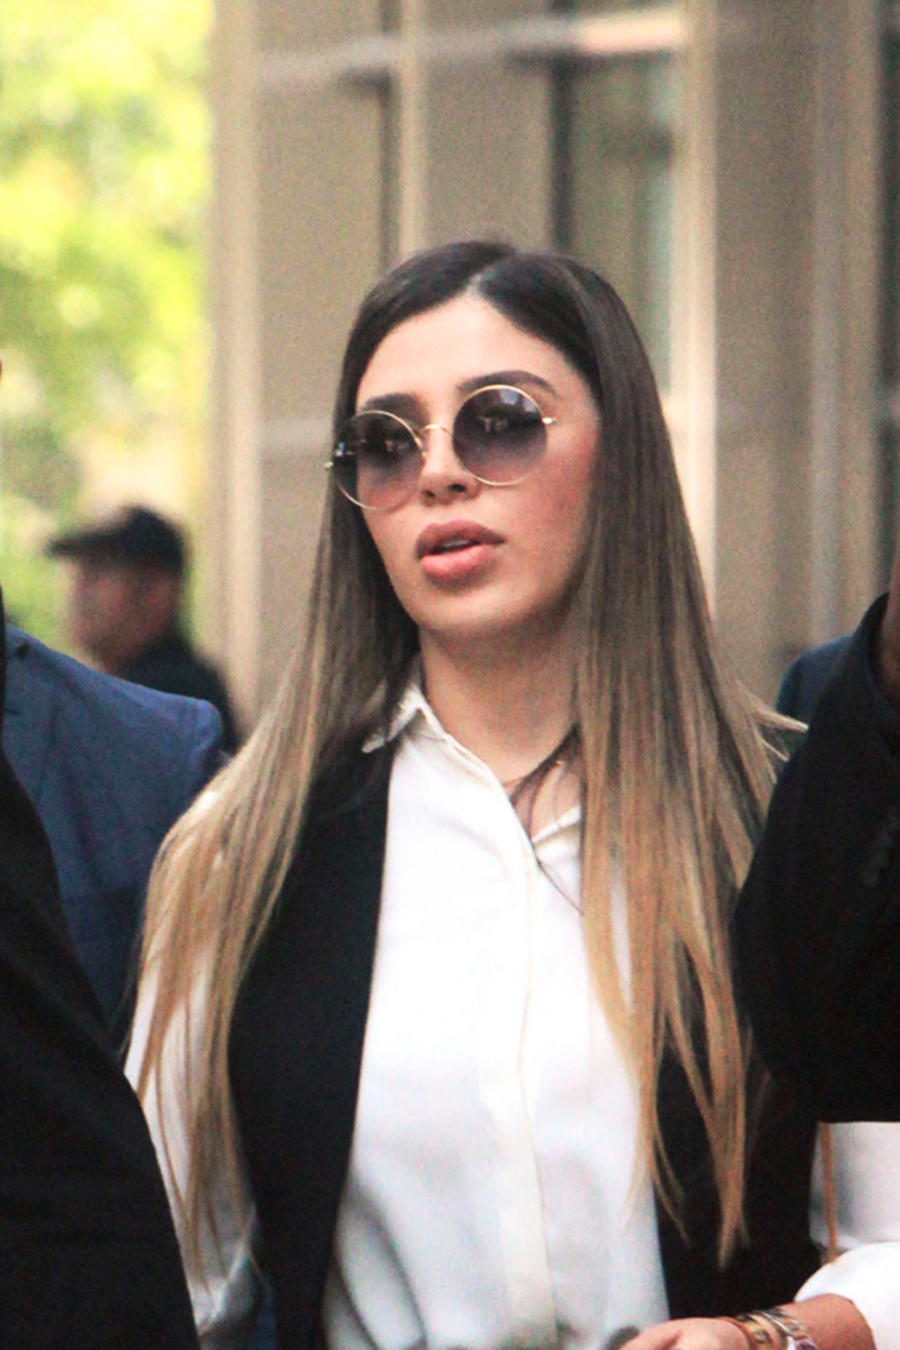 Emma Coronel arriving at court